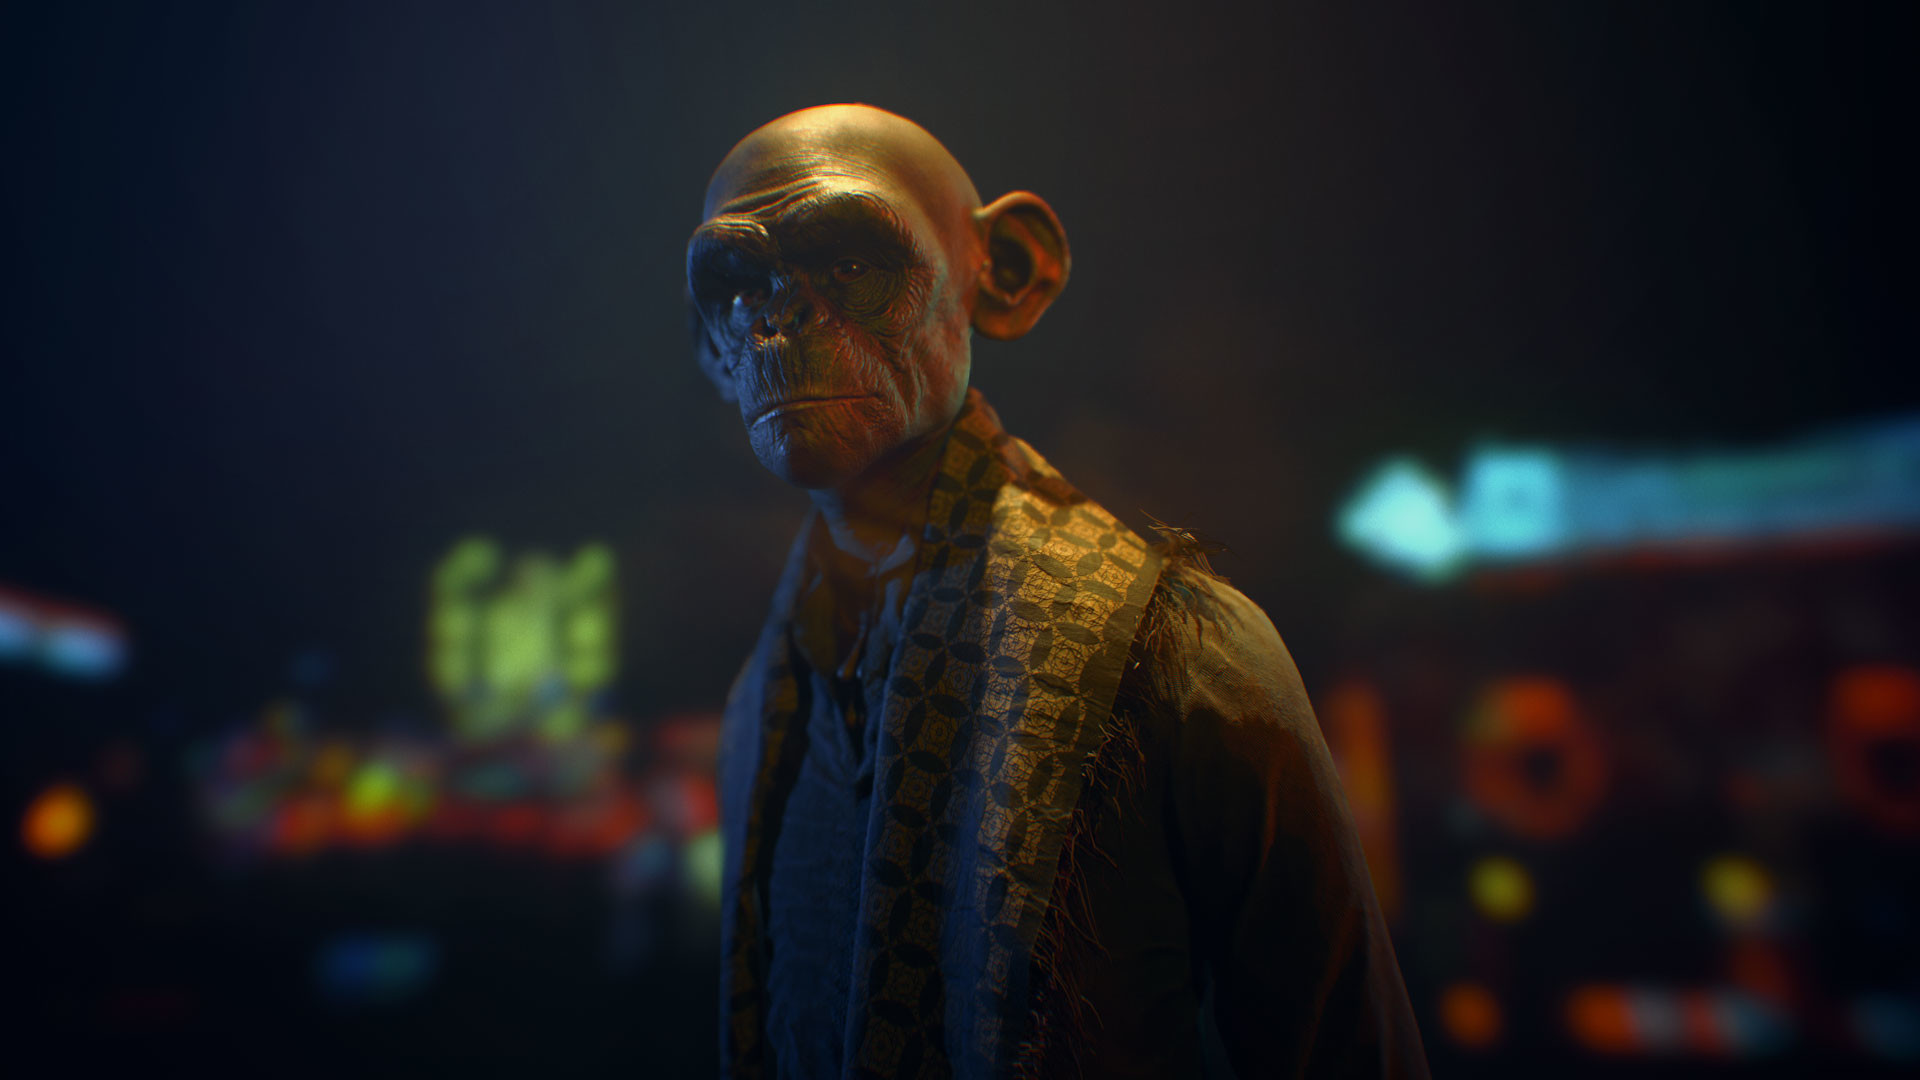 Pablo munoz gomez humanzee alternative render03